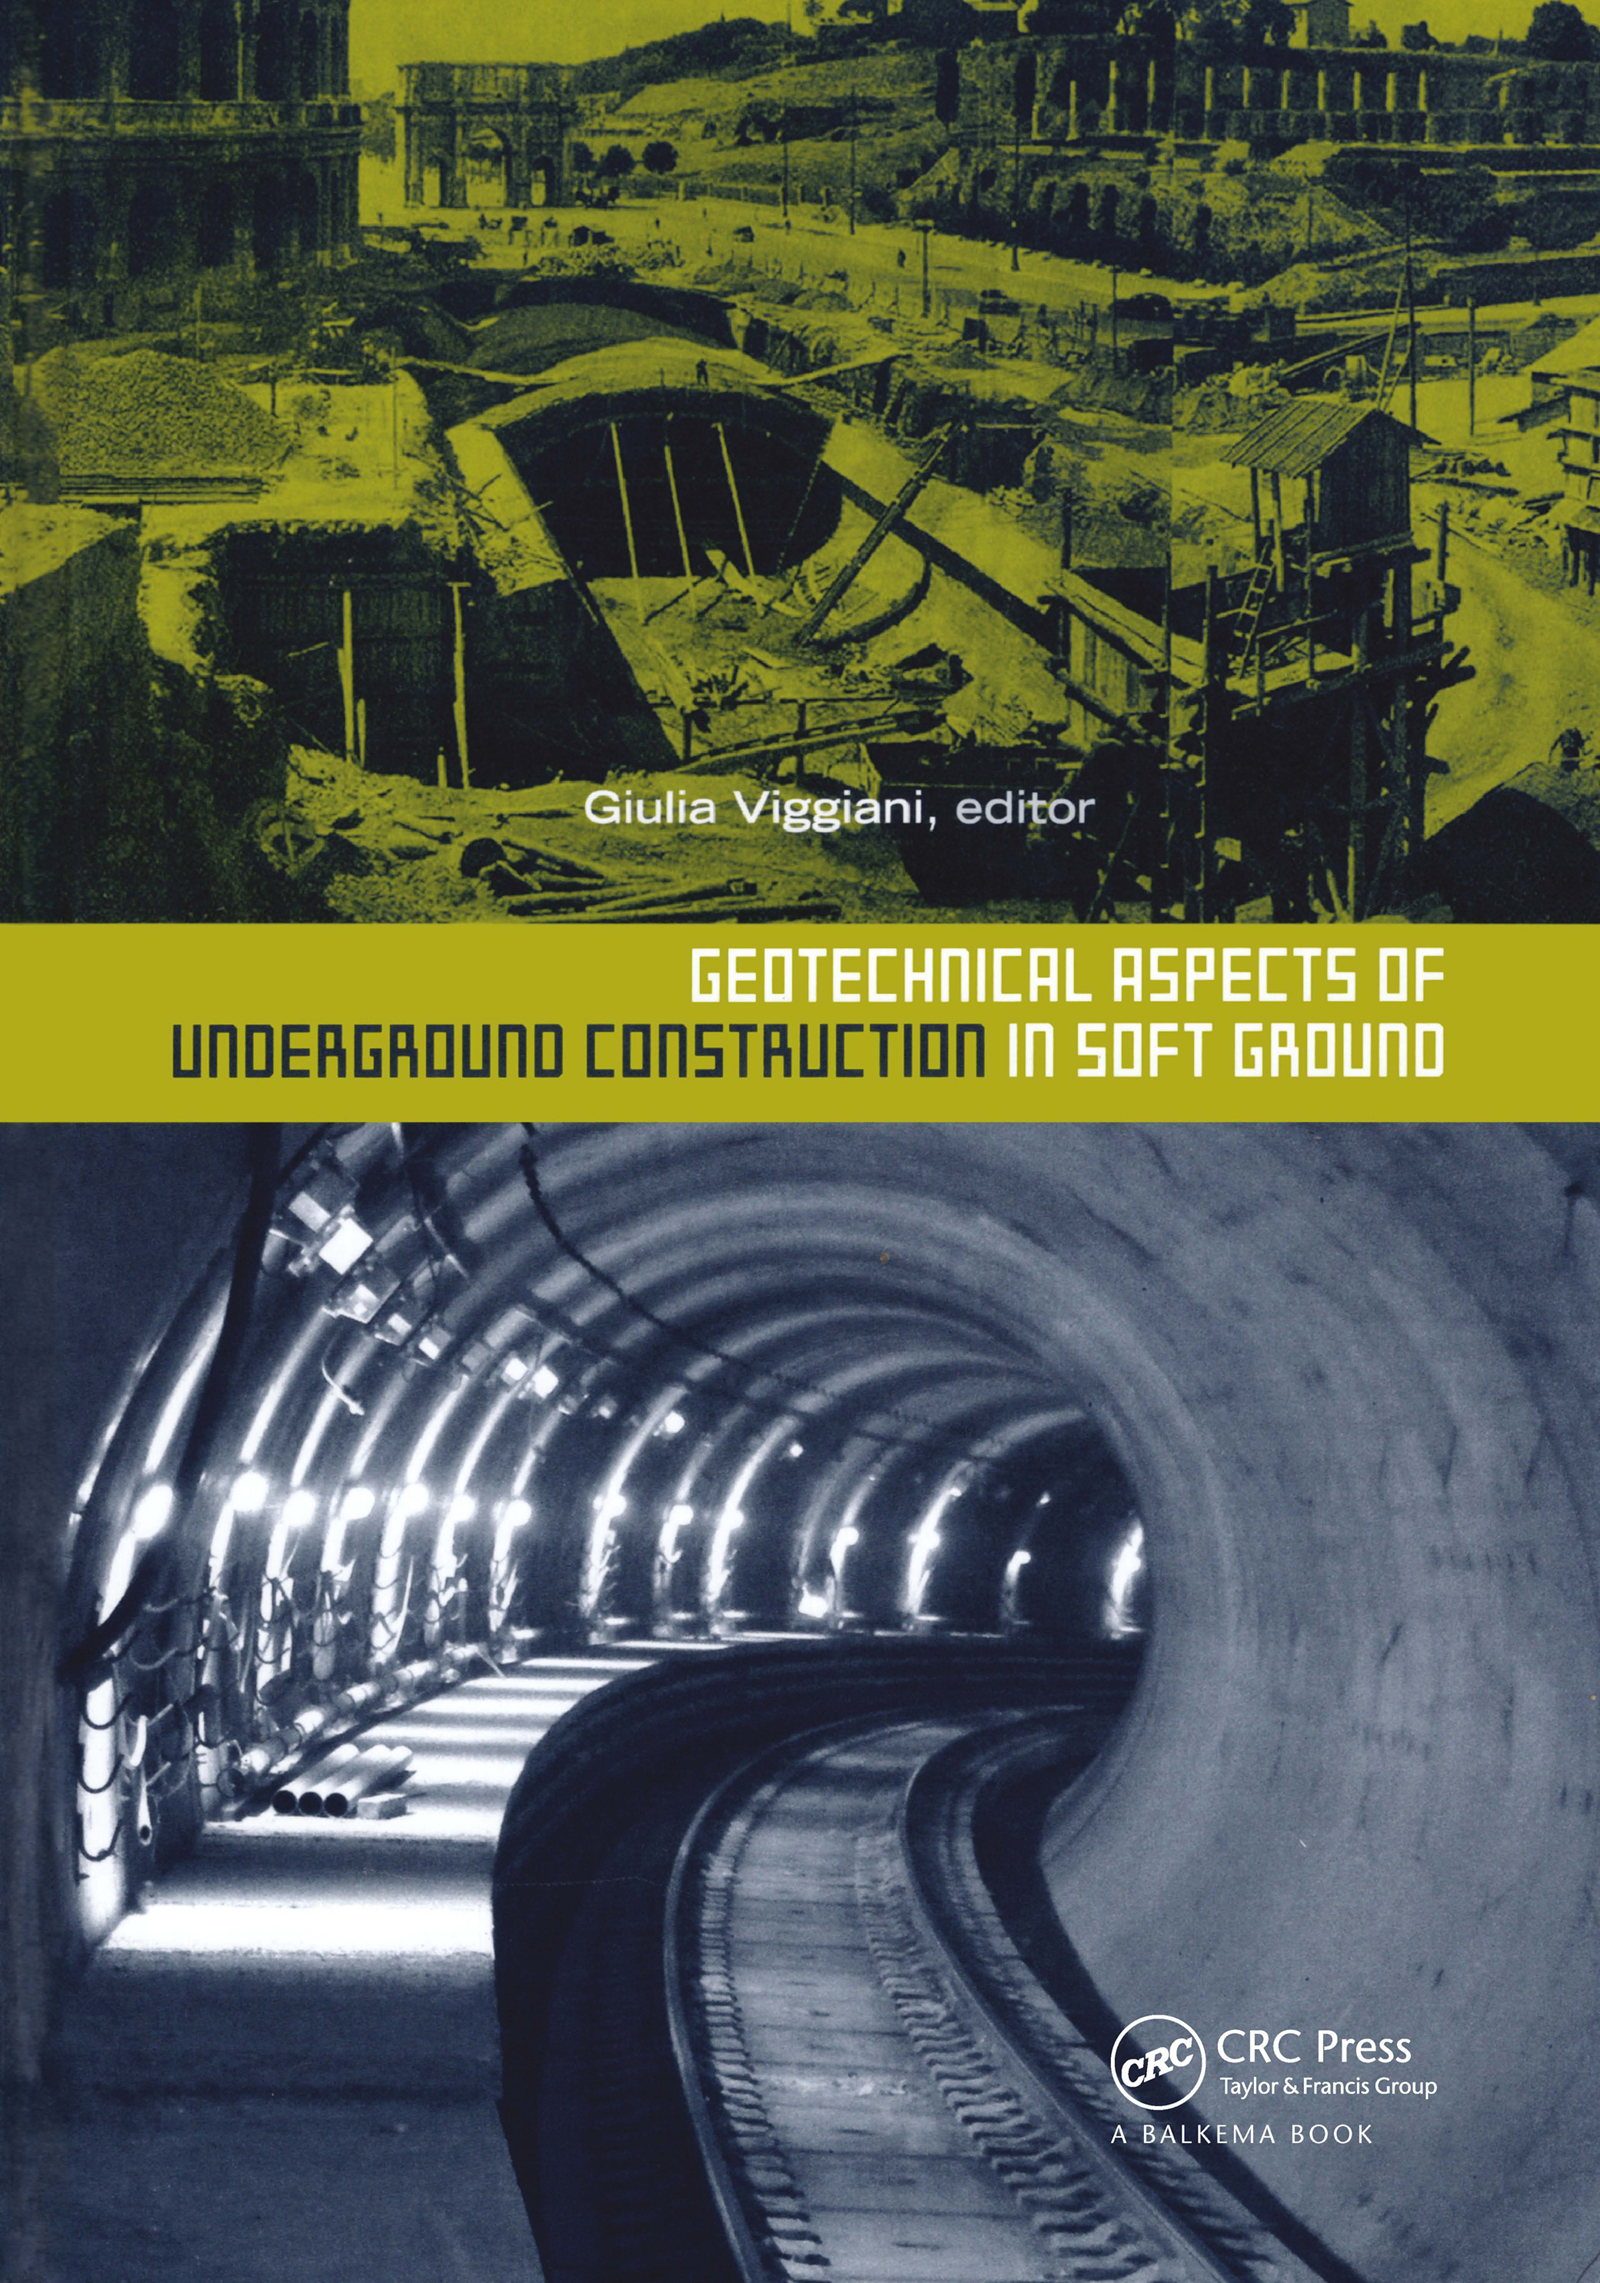 Geotechnical Aspects of Underground Construction in Soft Ground: 1st Edition (Pack - Book and CD) book cover